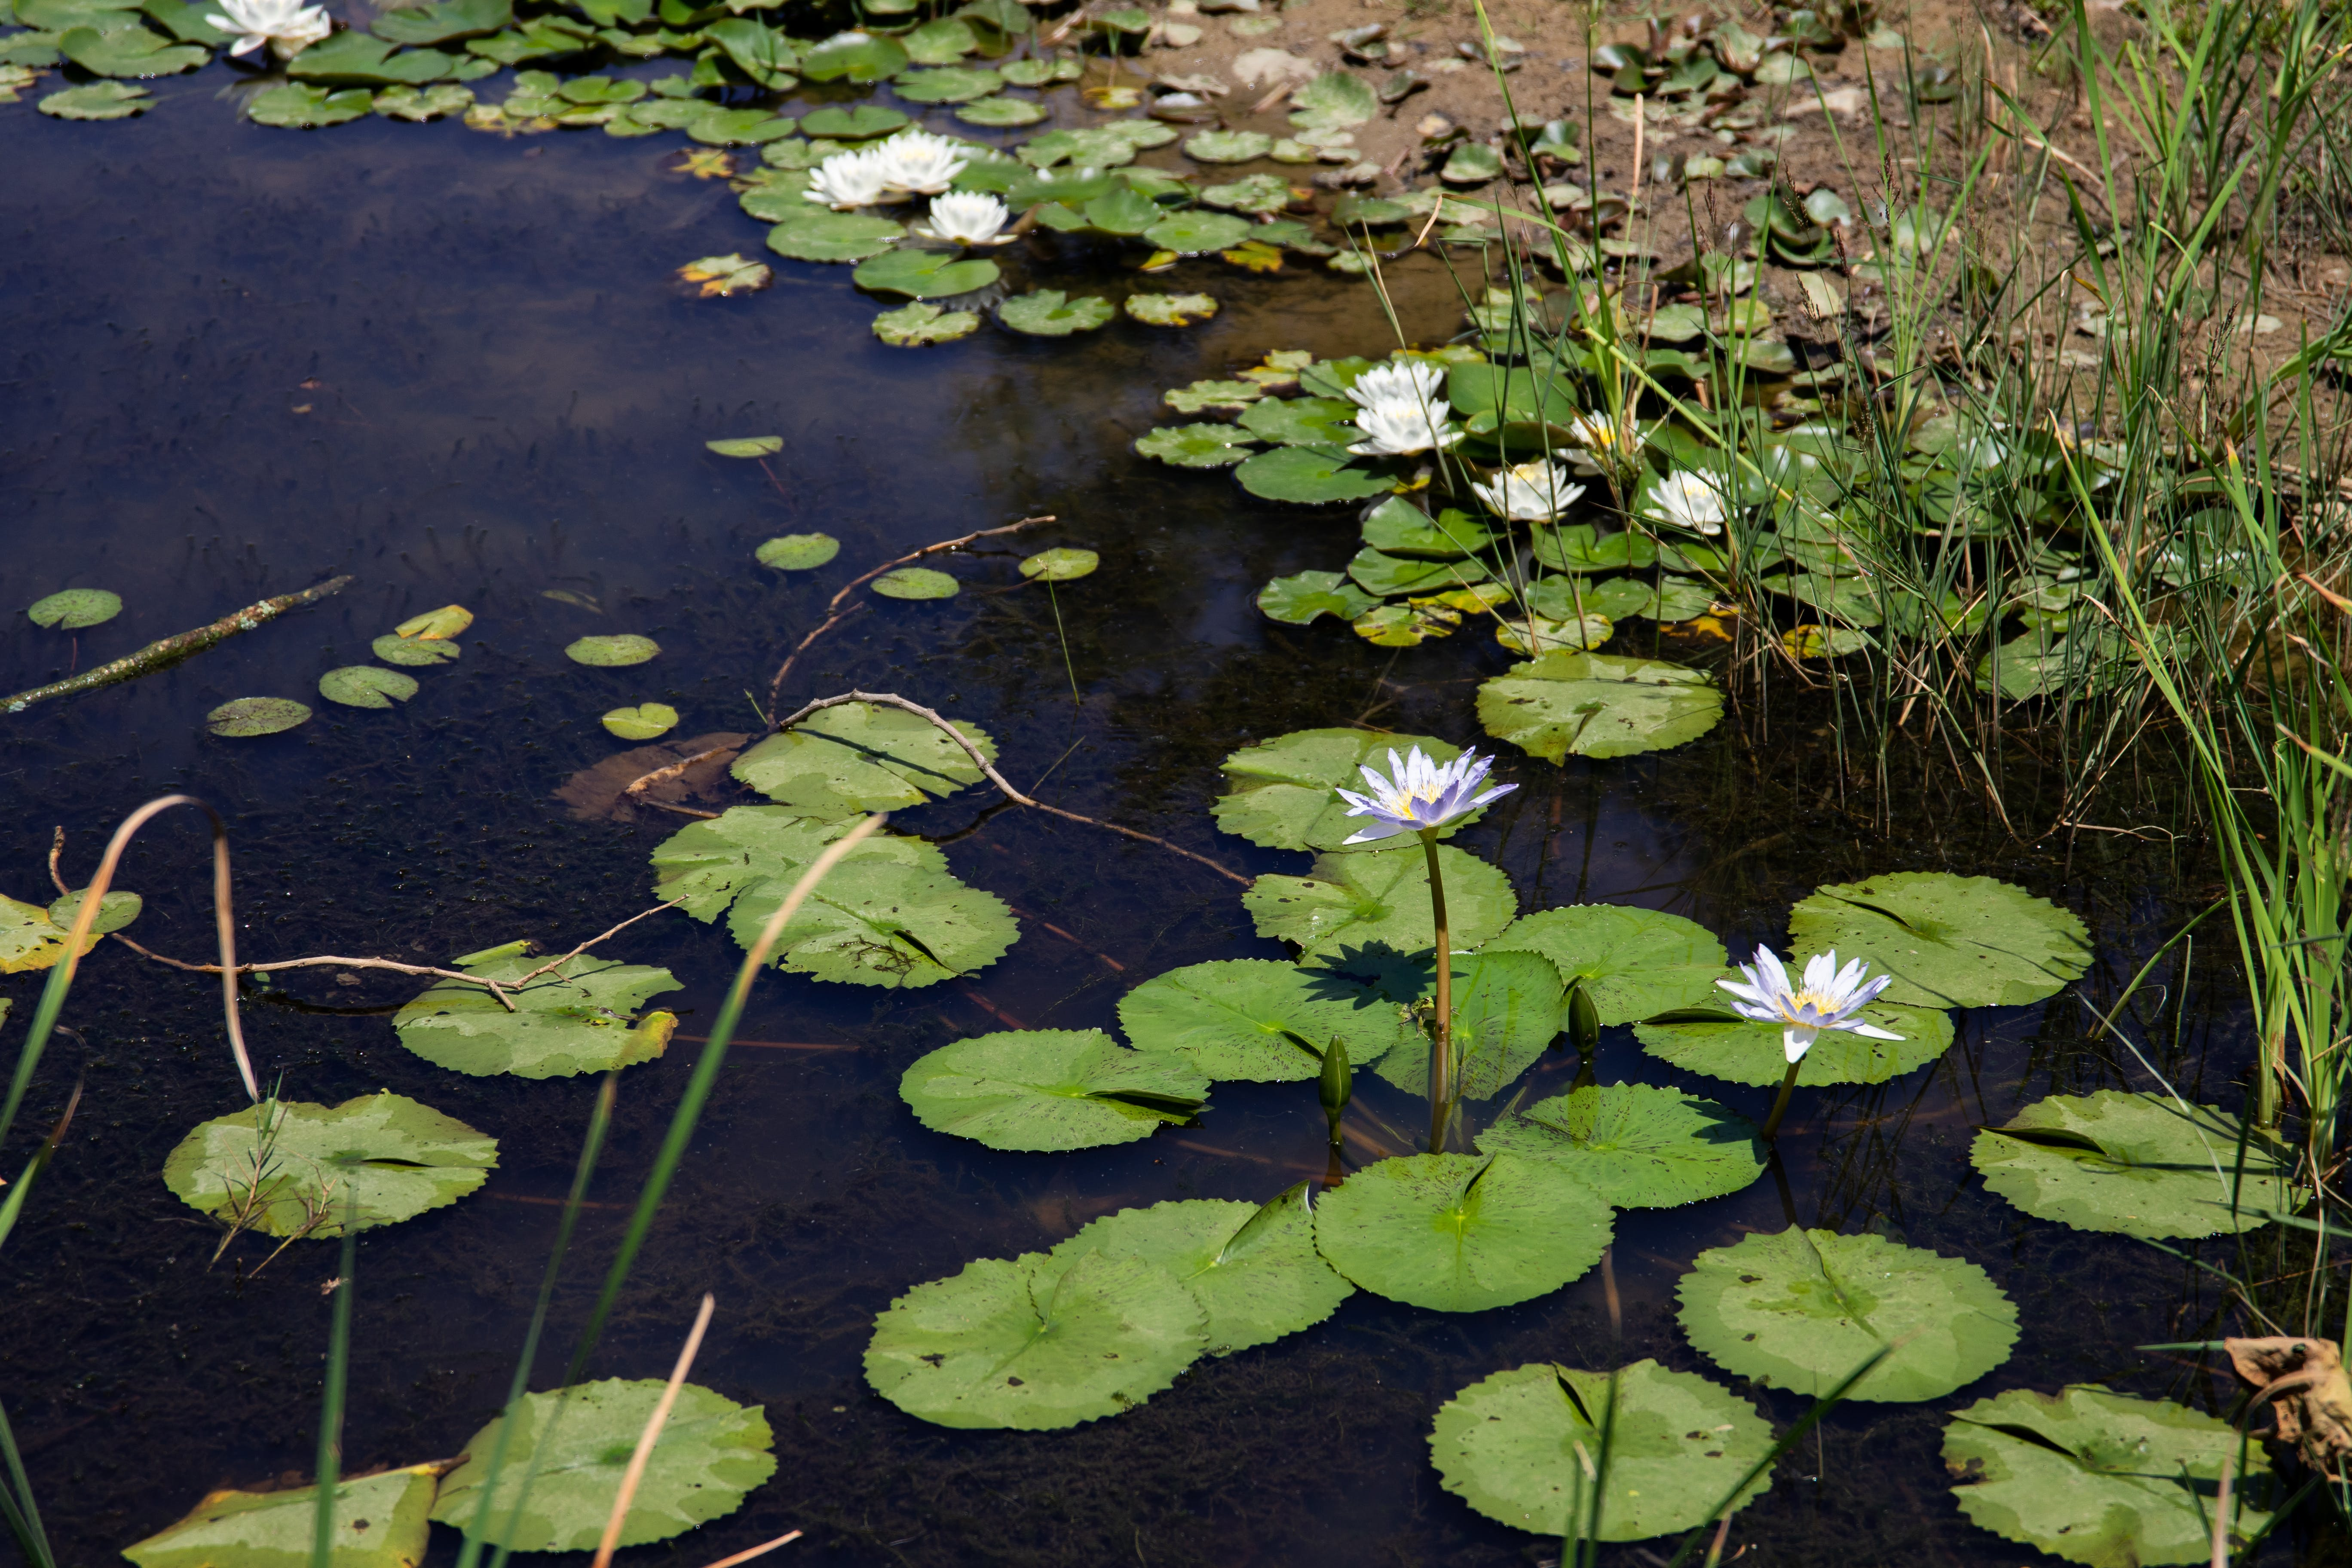 Free stock photo of flowers, grass, nature, pond